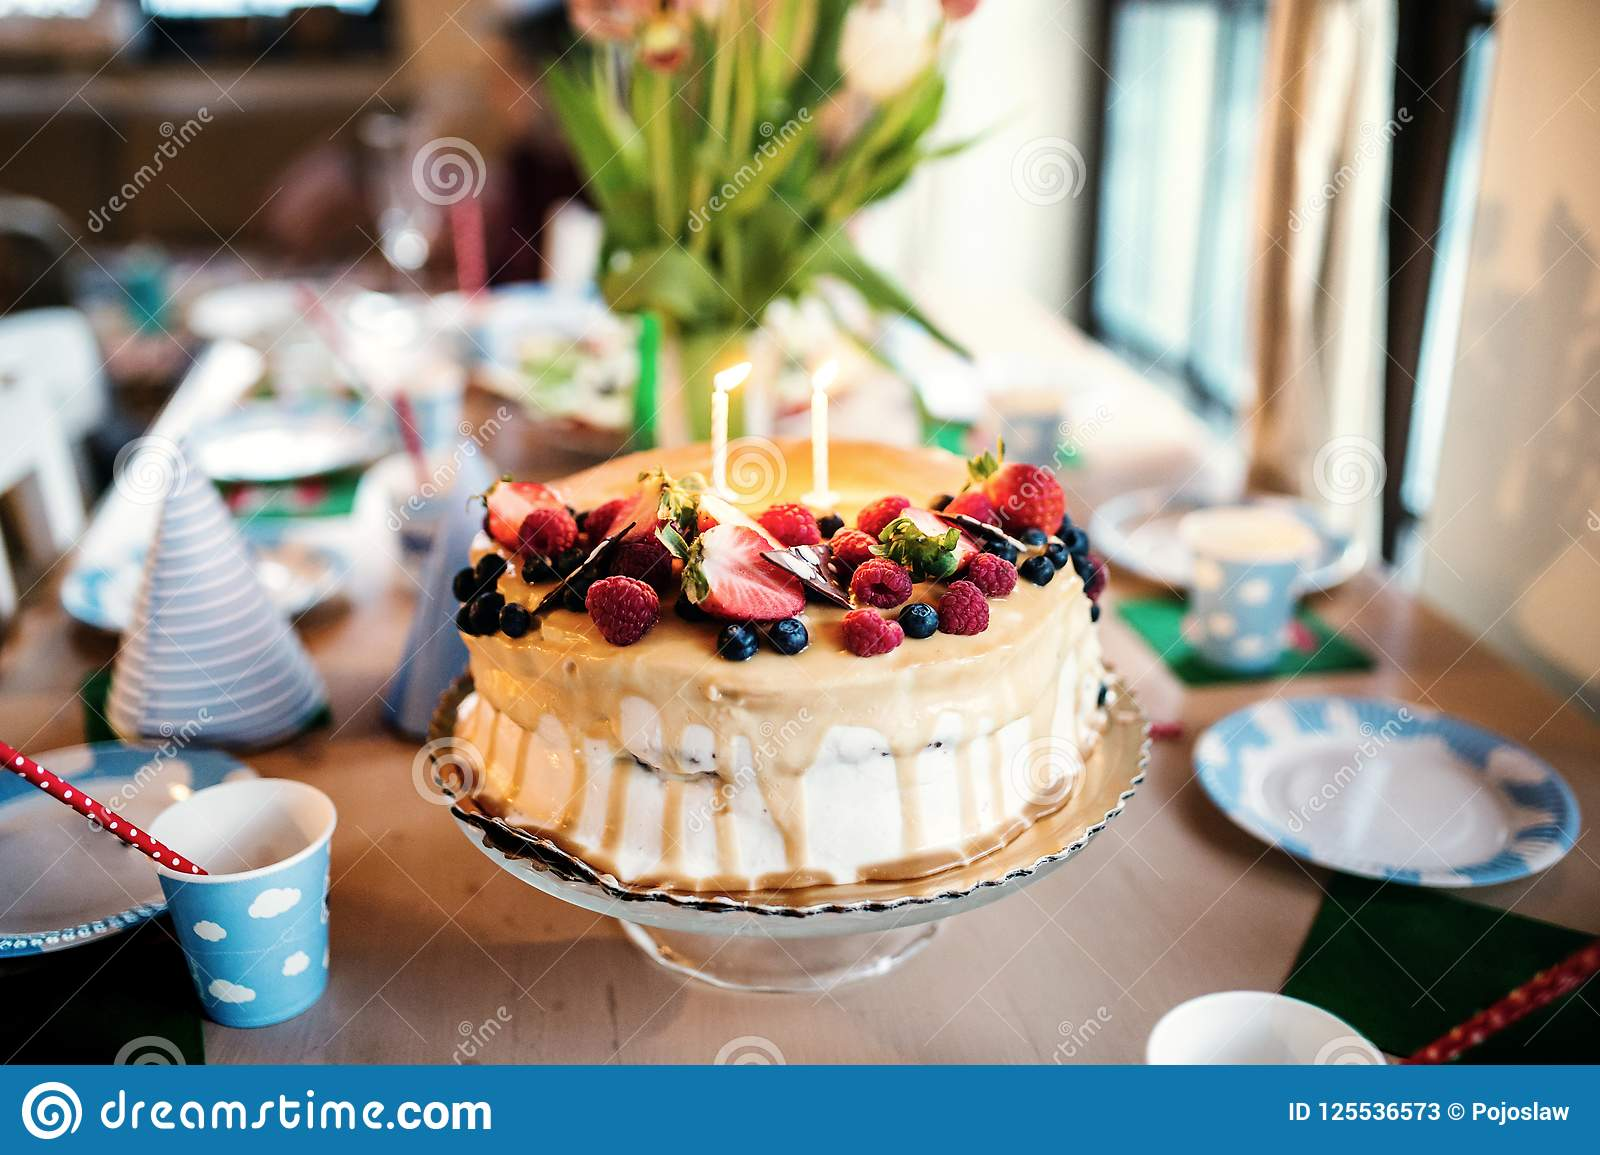 A Birthday Cake On Glass Stand And Vase With Tulips The Table